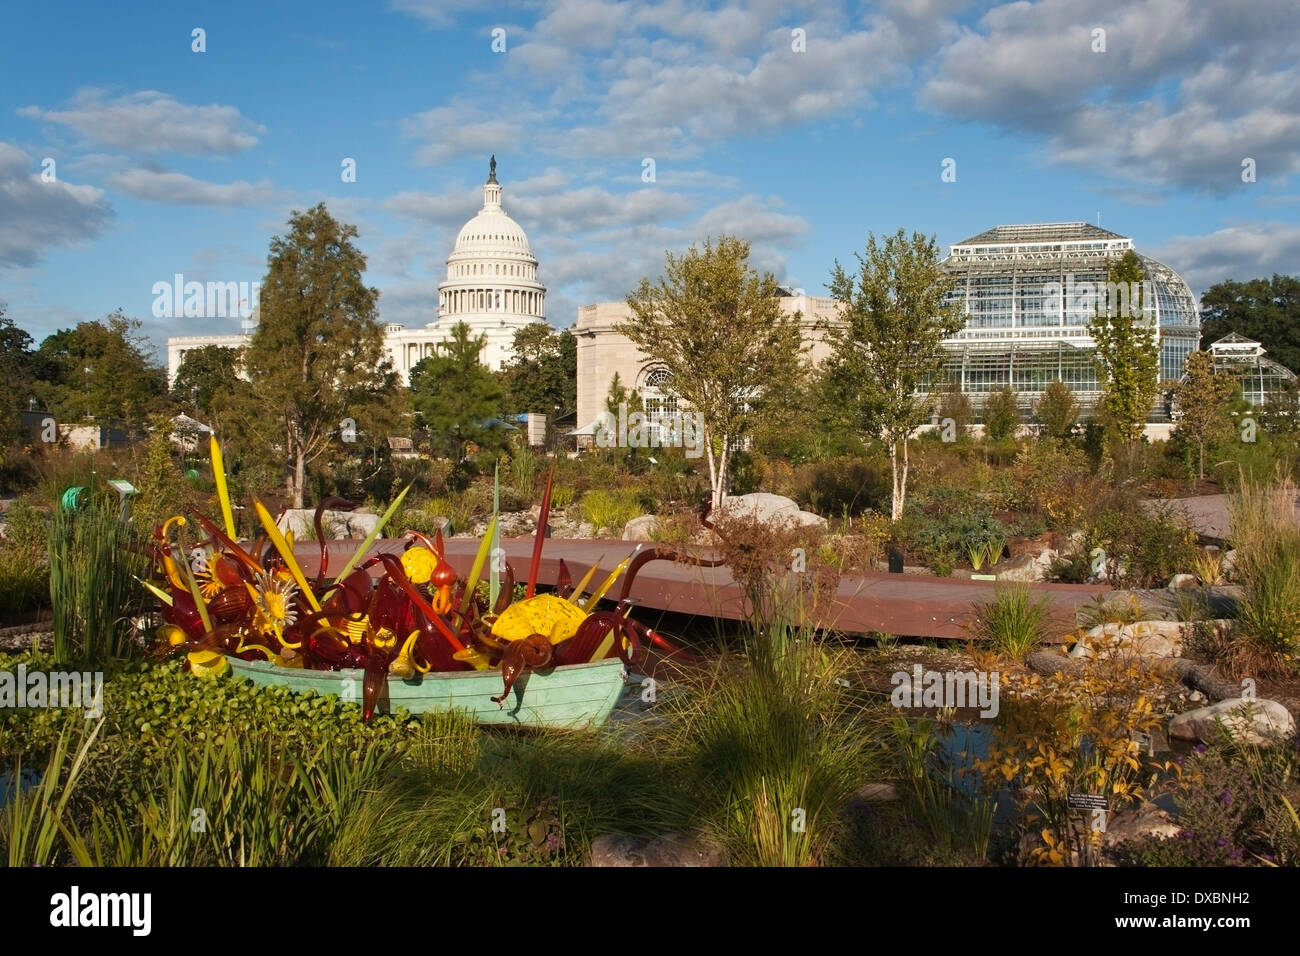 Washington Dc Botanic Garden Stock Photos & Washington Dc Botanic ...